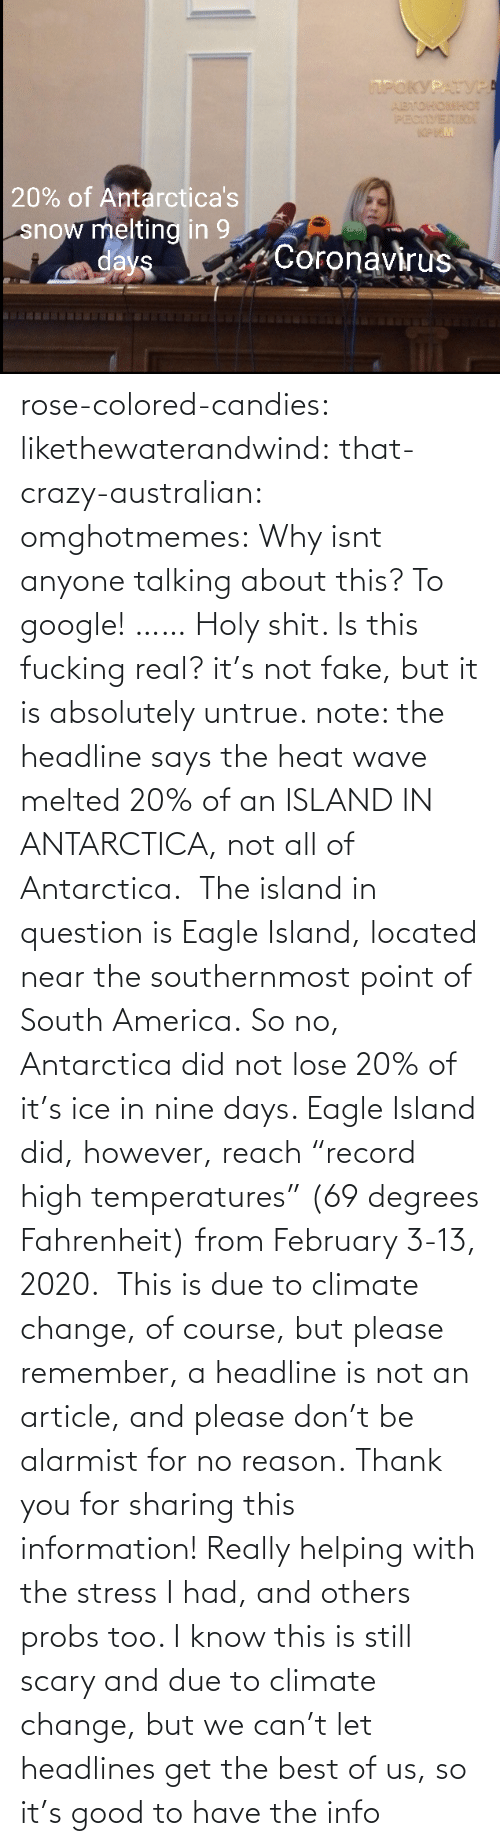 "Information: rose-colored-candies: likethewaterandwind:   that-crazy-australian:  omghotmemes:  Why isnt anyone talking about this?   To google!  ……   Holy shit. Is this fucking real?   it's not fake, but it is absolutely untrue. note: the headline says the heat wave melted 20% of an ISLAND IN ANTARCTICA, not all of Antarctica.  The island in question is Eagle Island, located near the southernmost point of South America. So no, Antarctica did not lose 20% of it's ice in nine days. Eagle Island did, however, reach ""record high temperatures"" (69 degrees Fahrenheit) from February 3-13, 2020.  This is due to climate change, of course, but please remember, a headline is not an article, and please don't be alarmist for no reason.    Thank you for sharing this information! Really helping with the stress I had, and others probs too. I know this is still scary and due to climate change, but we can't let headlines get the best of us, so it's good to have the info"